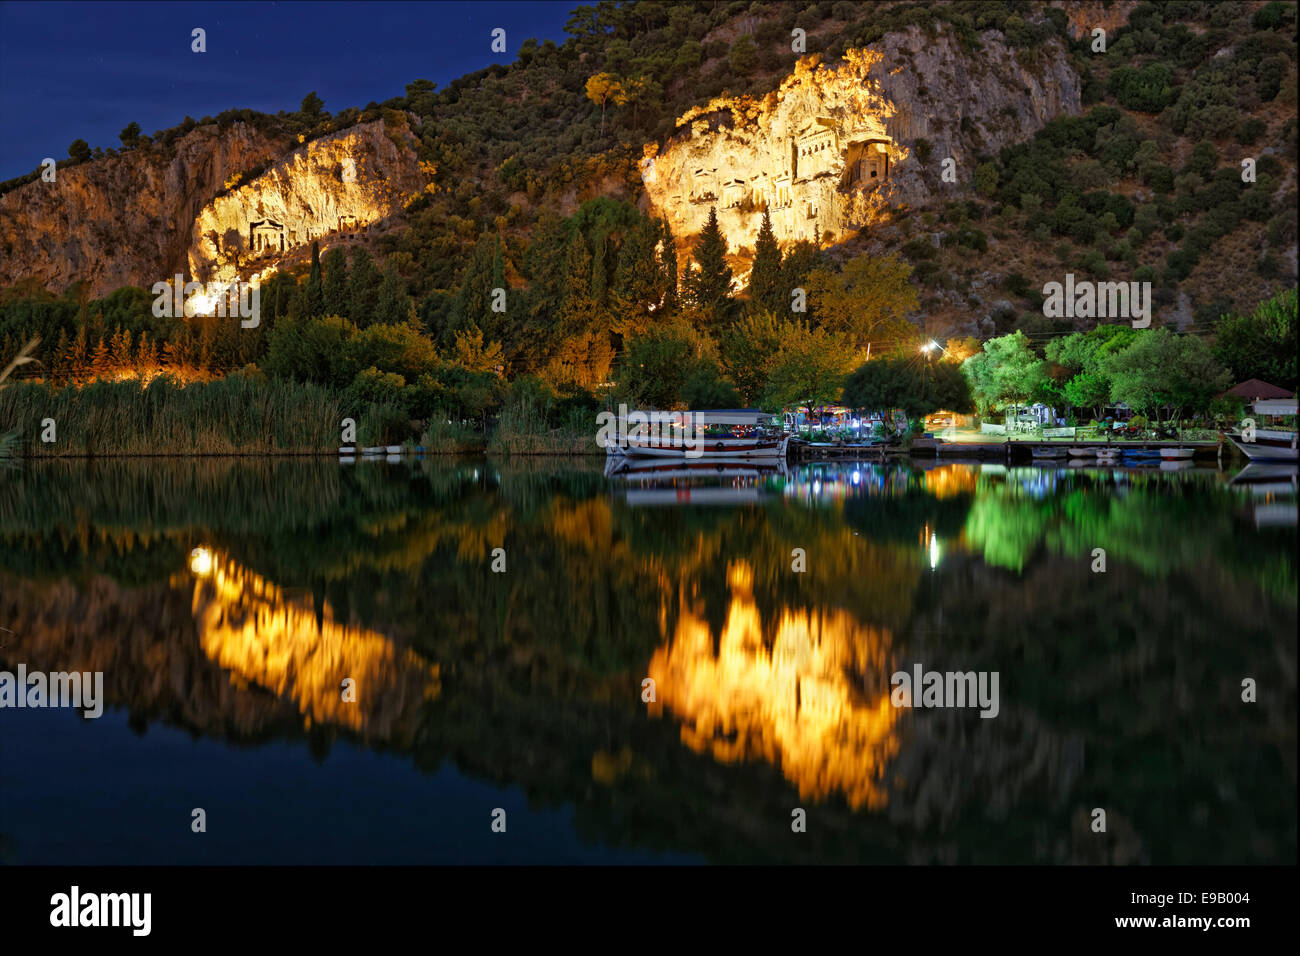 Illuminated Rock Tombs of Kaunas on the Dalyan River, Dalyan, Muğla Province, Turkish Riviera or Turquoise Coast, - Stock Image